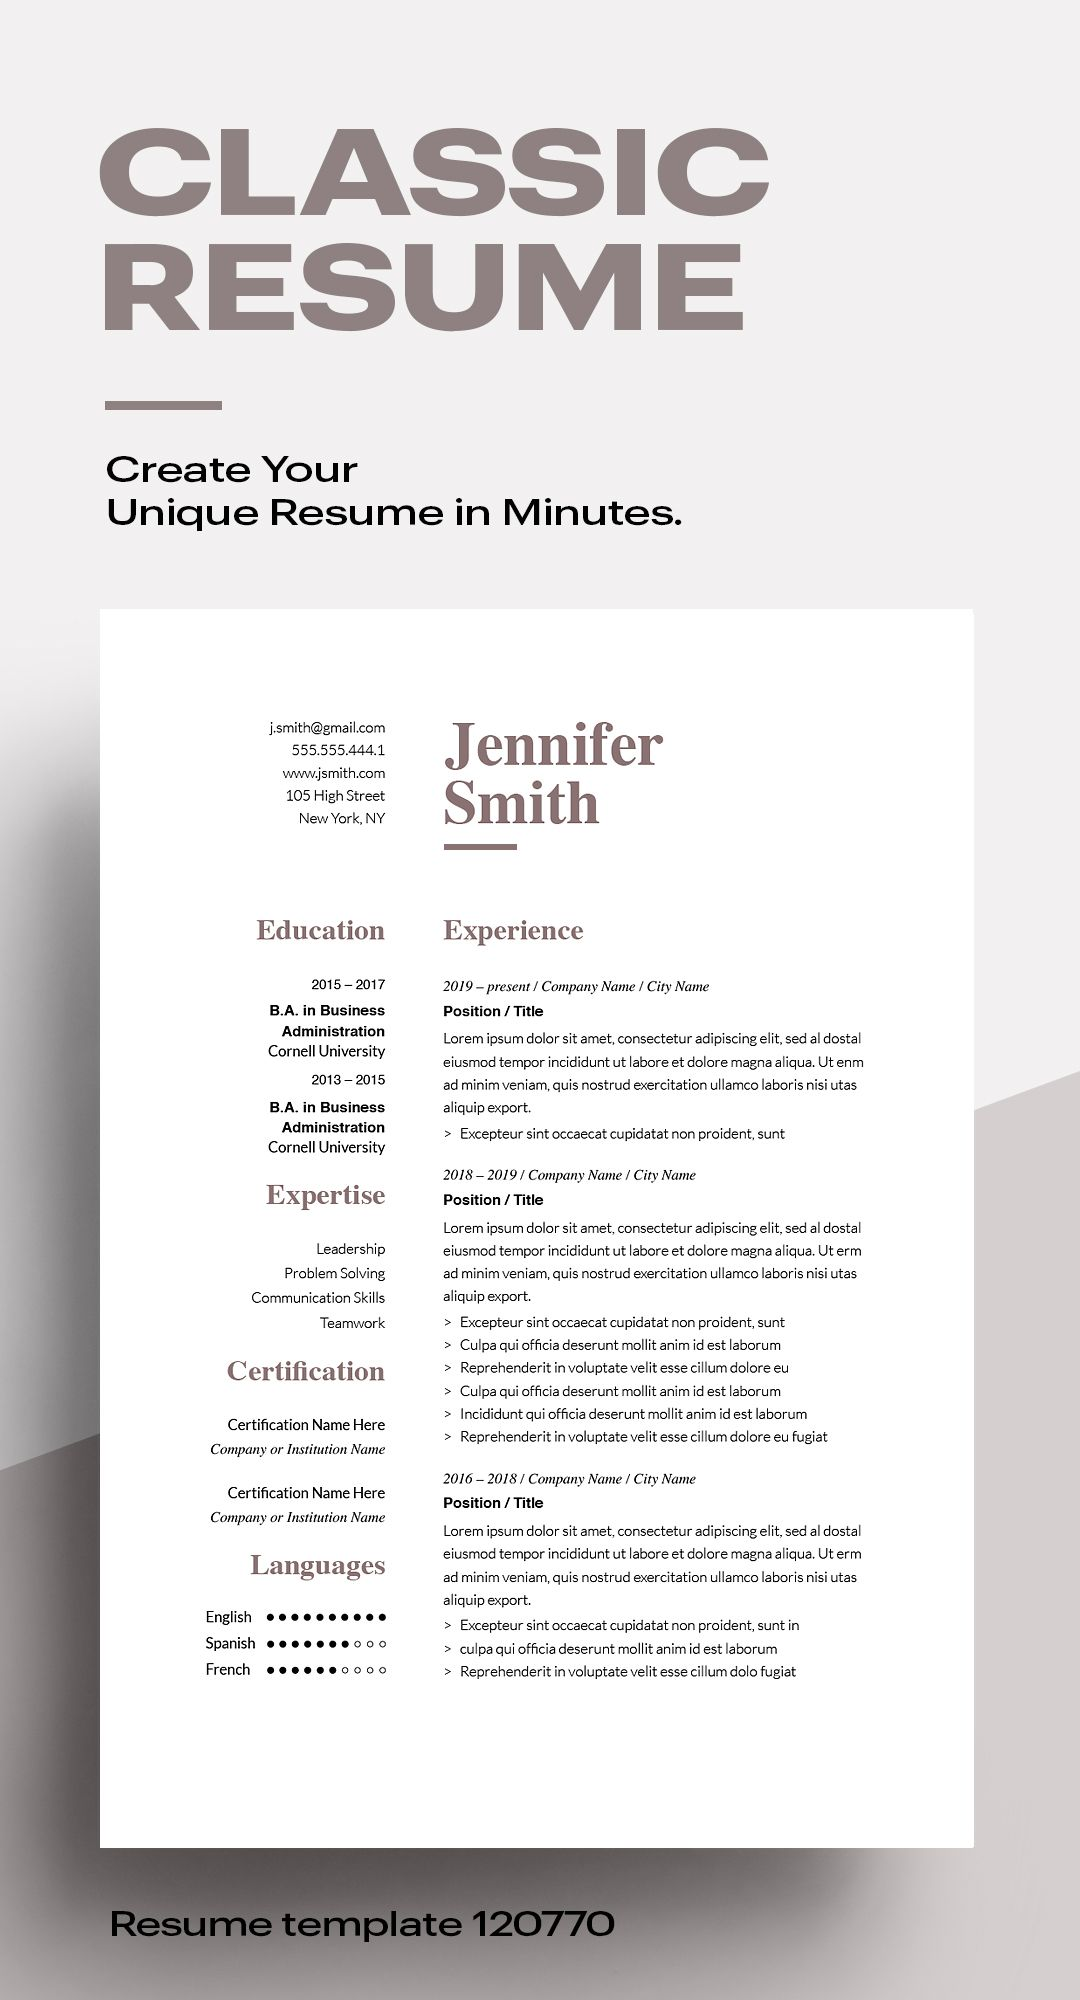 Classic Resume Template 120770 Color Brown Ms Word Resumeway In 2020 Resume Template Downloadable Resume Template Unique Resume Classic resume template word download